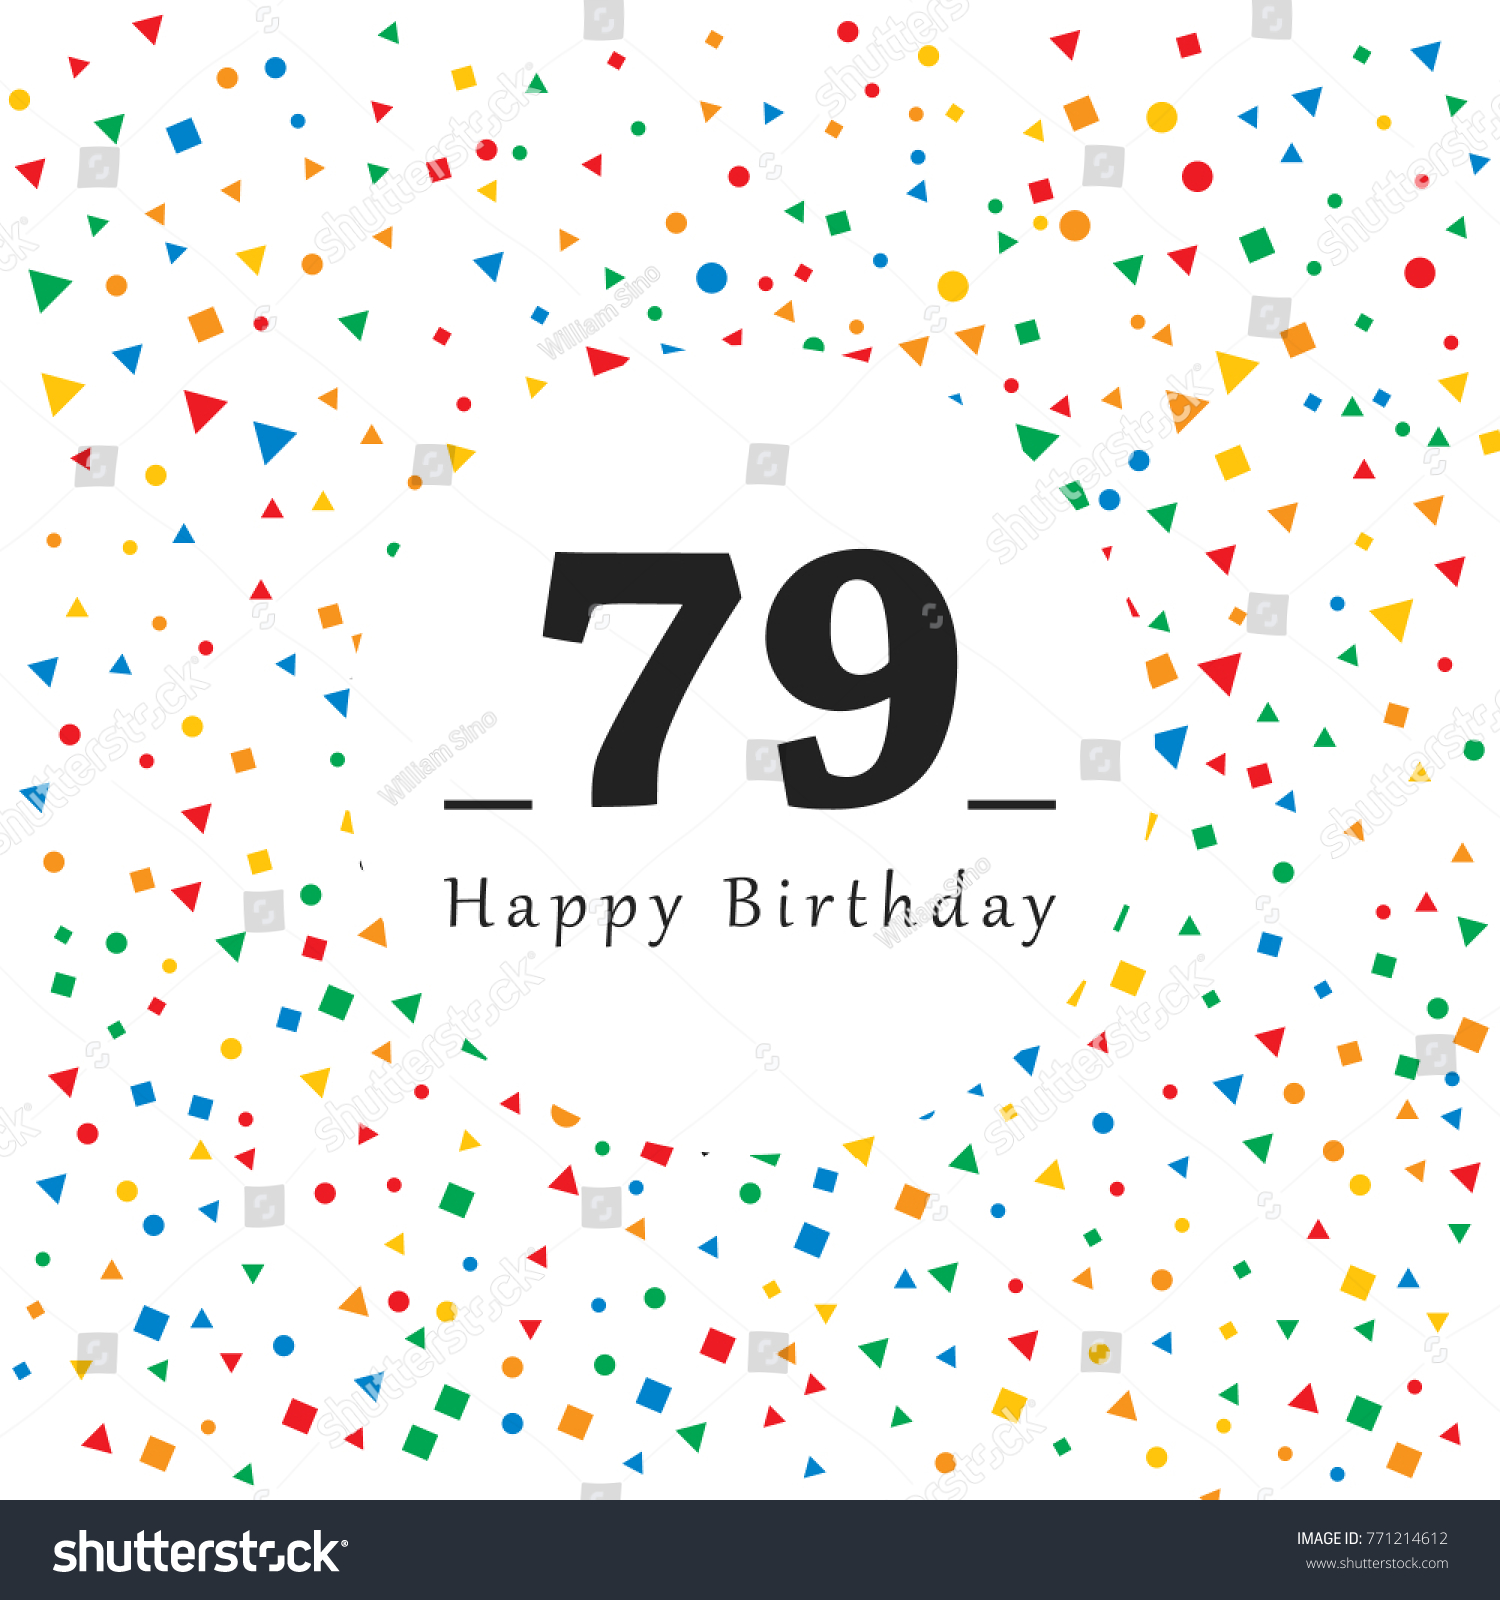 Happy 79 Birthday Card Abstract Background Image Vectorielle De